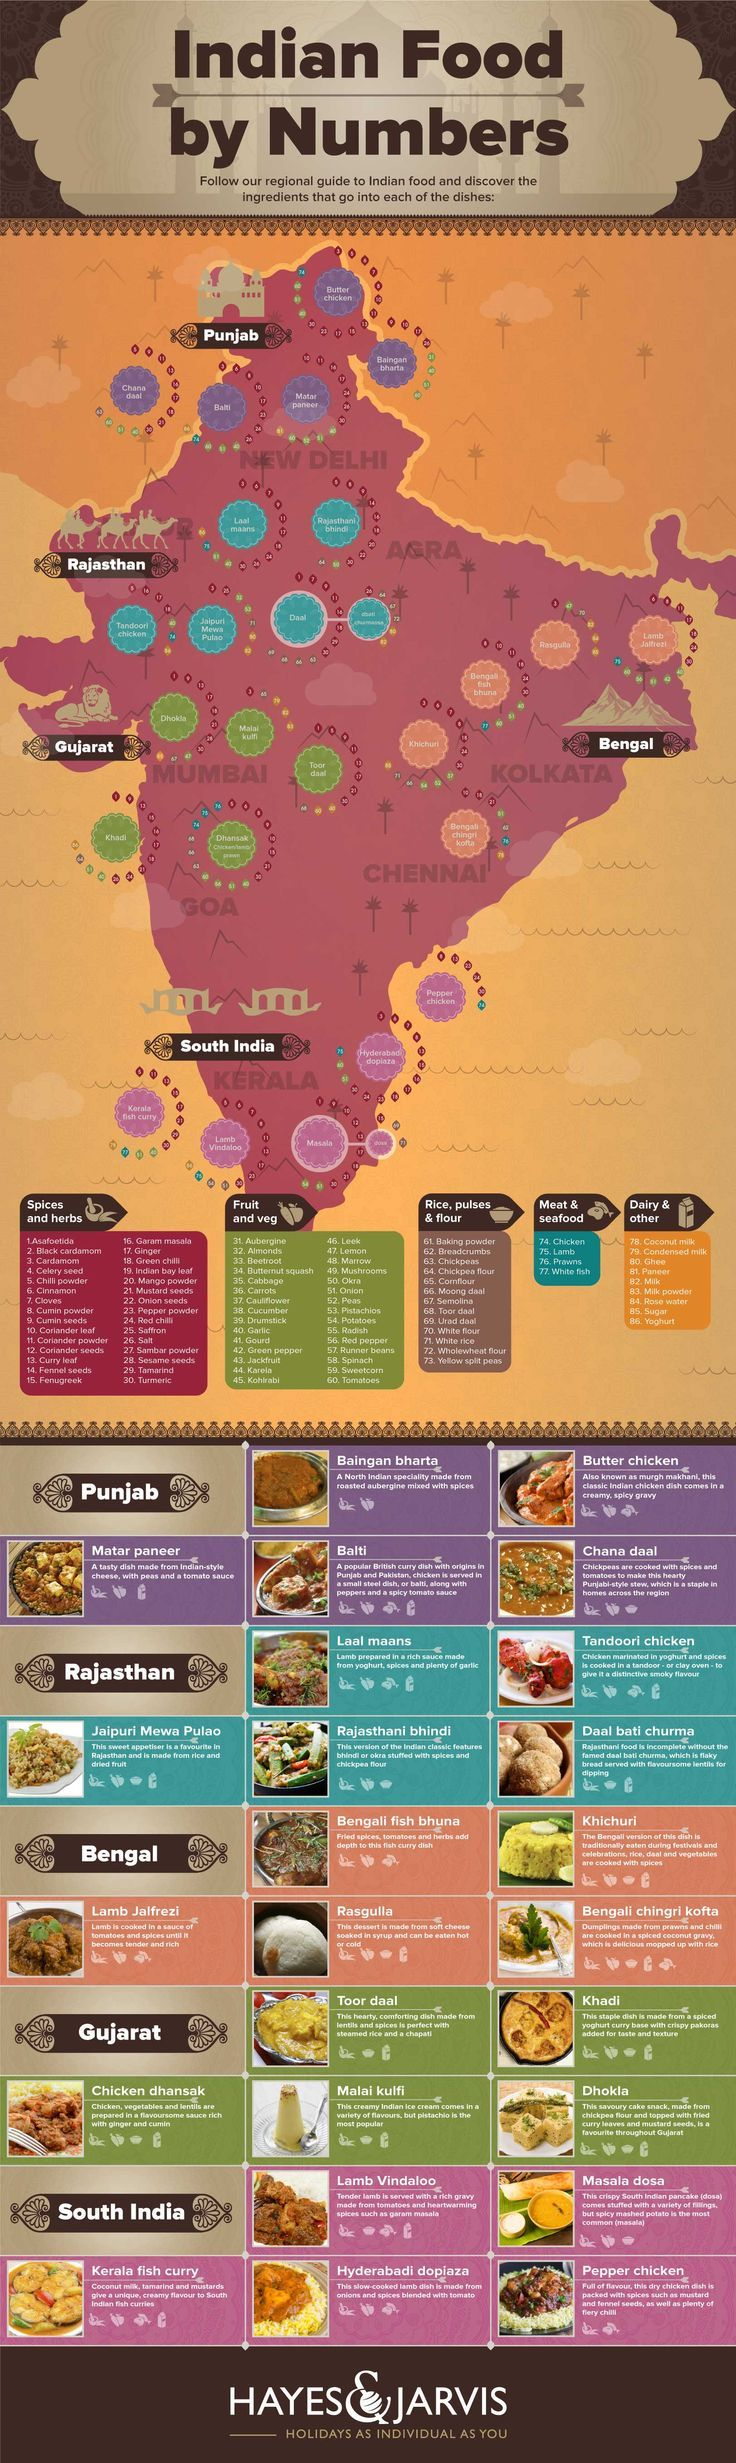 Think you know your Indian cuisine? Put your knowledge to the test with this infographic that lists a number of Indian dishes by their region and ingredients. >> https://www.finedininglovers.com/blog/food-drinks/different-indian-cuisines/